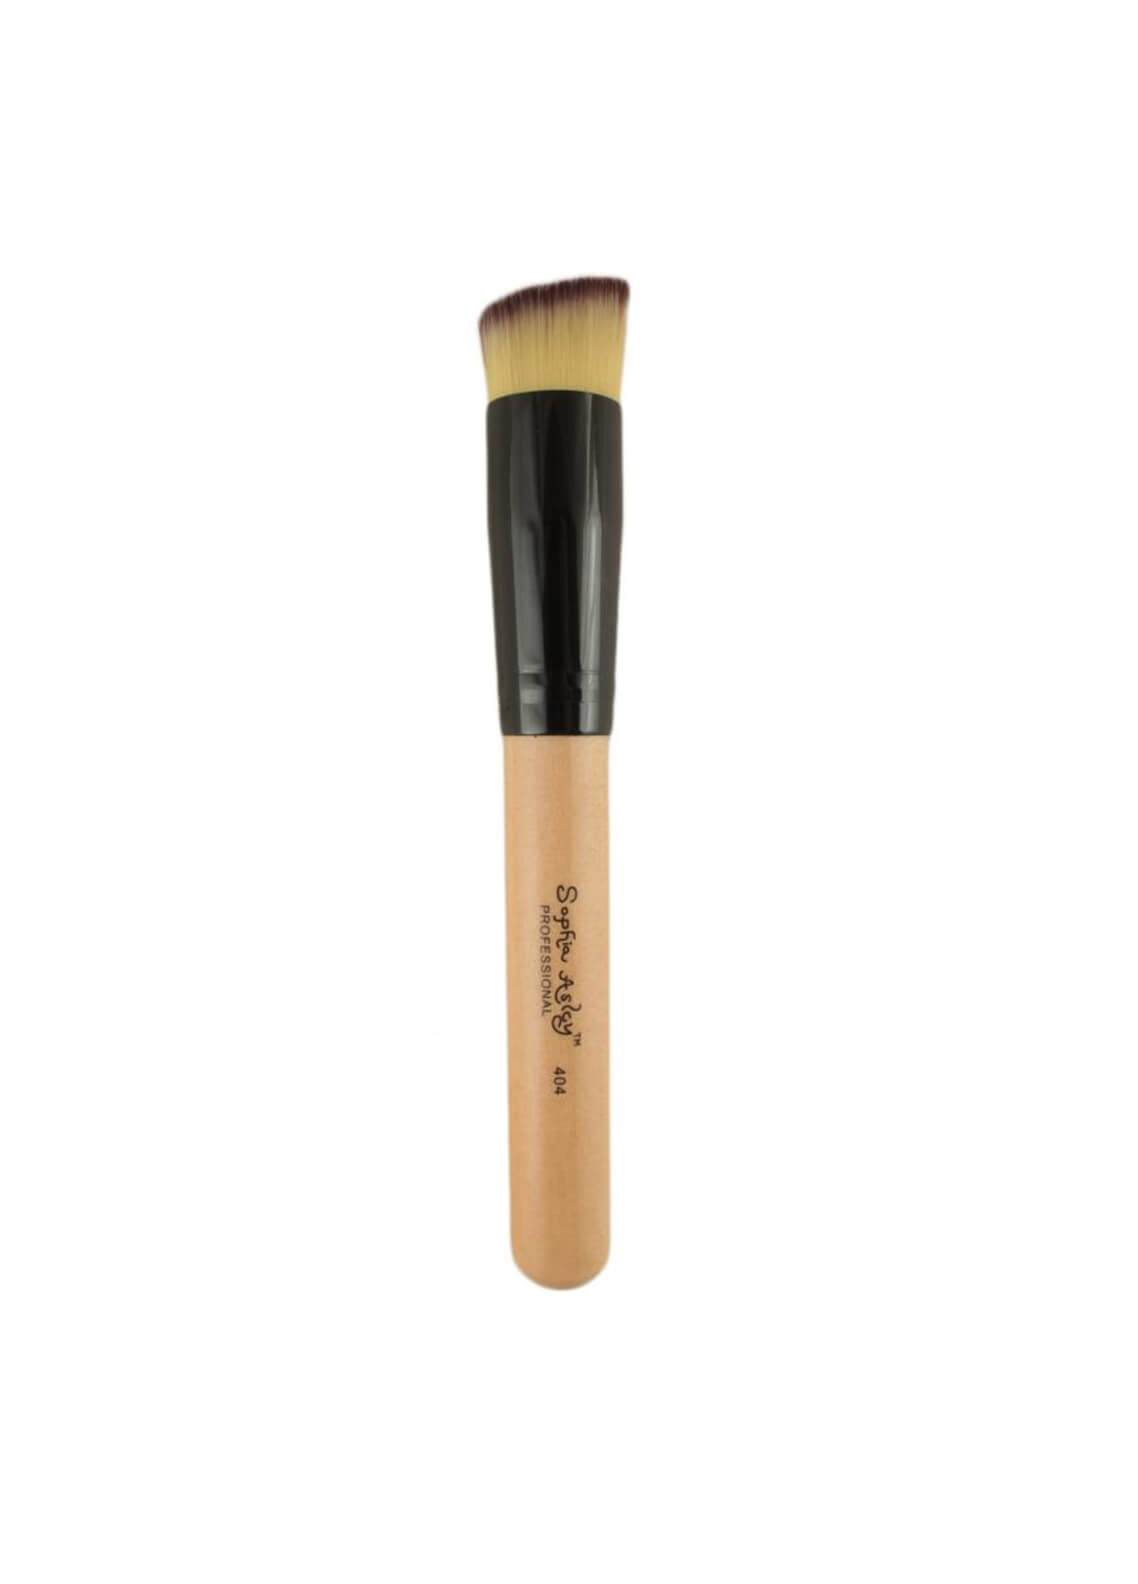 Sophia Asley Professional Wooden Double Sided Brush Applicator with Contoring